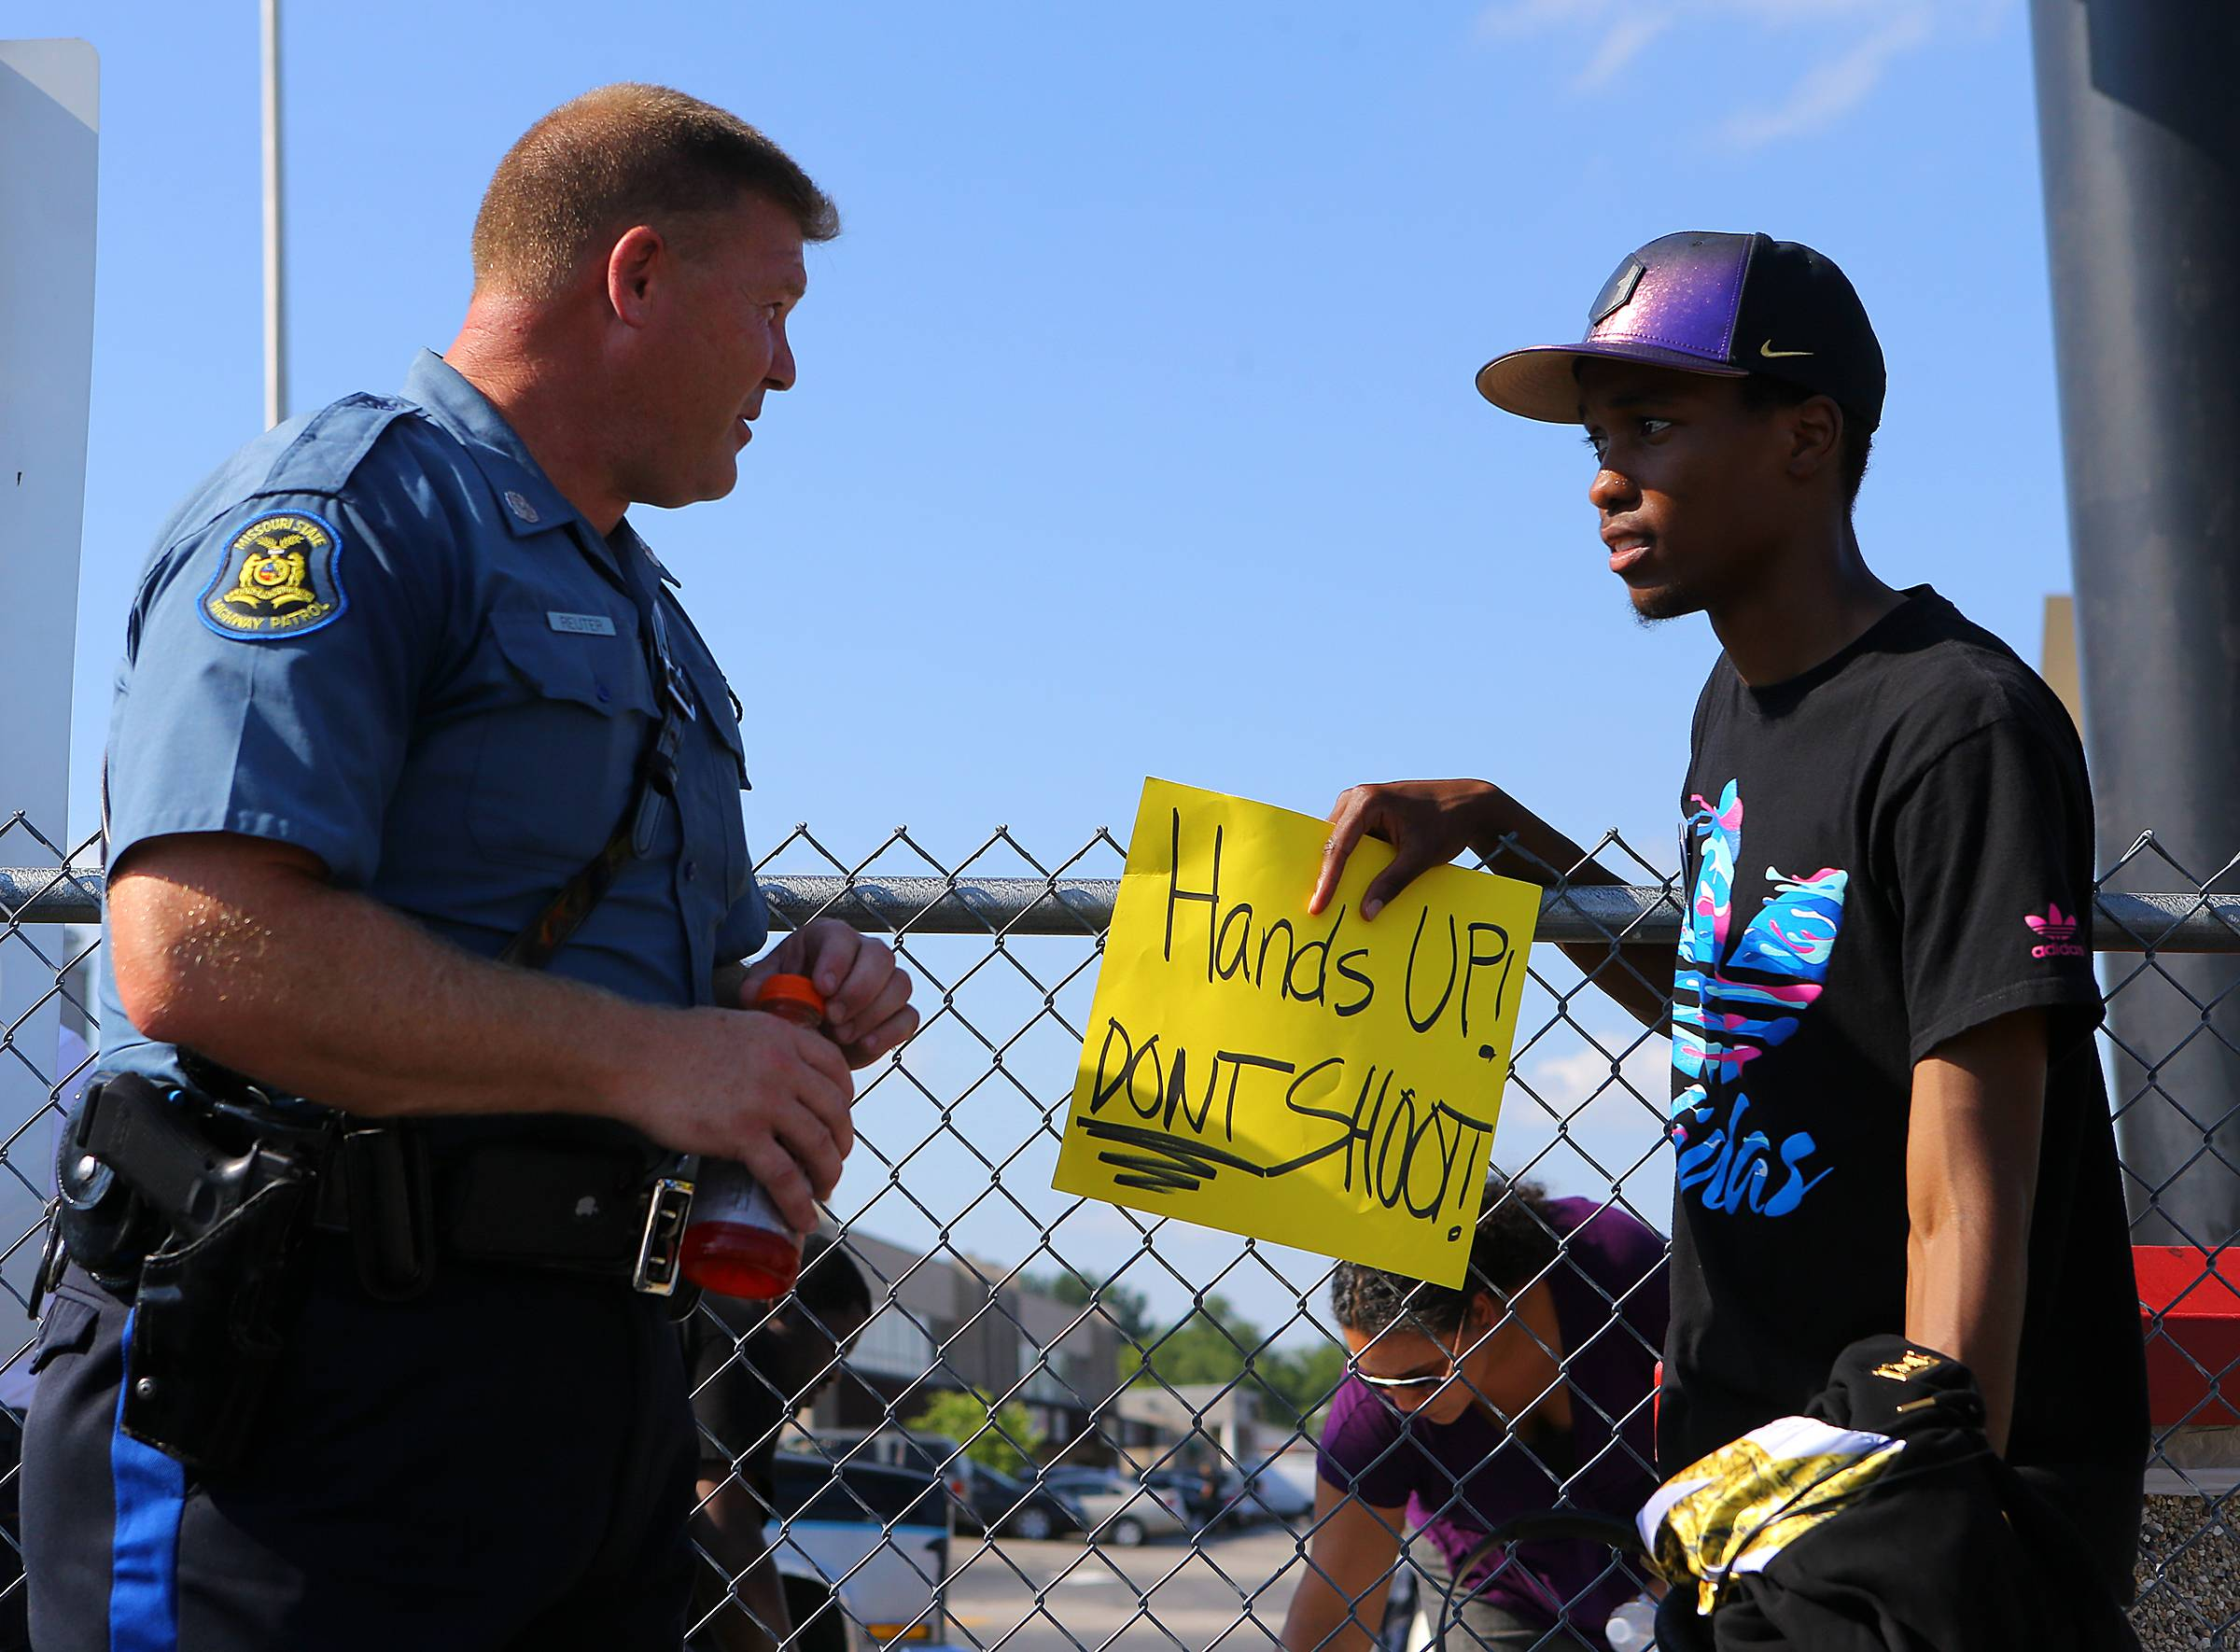 "In an effort to foster some good will Missouri State Higway Patrol trooper D. Reuter chats with protester Robert Clark on Tuesday in Ferguson, Mo. The city of Ferguson says it is working hard to better connect with the community and learn from the ""discord and heartbreak"" that followed the shooting death of 18-year-old Michael Brown by a police officer."